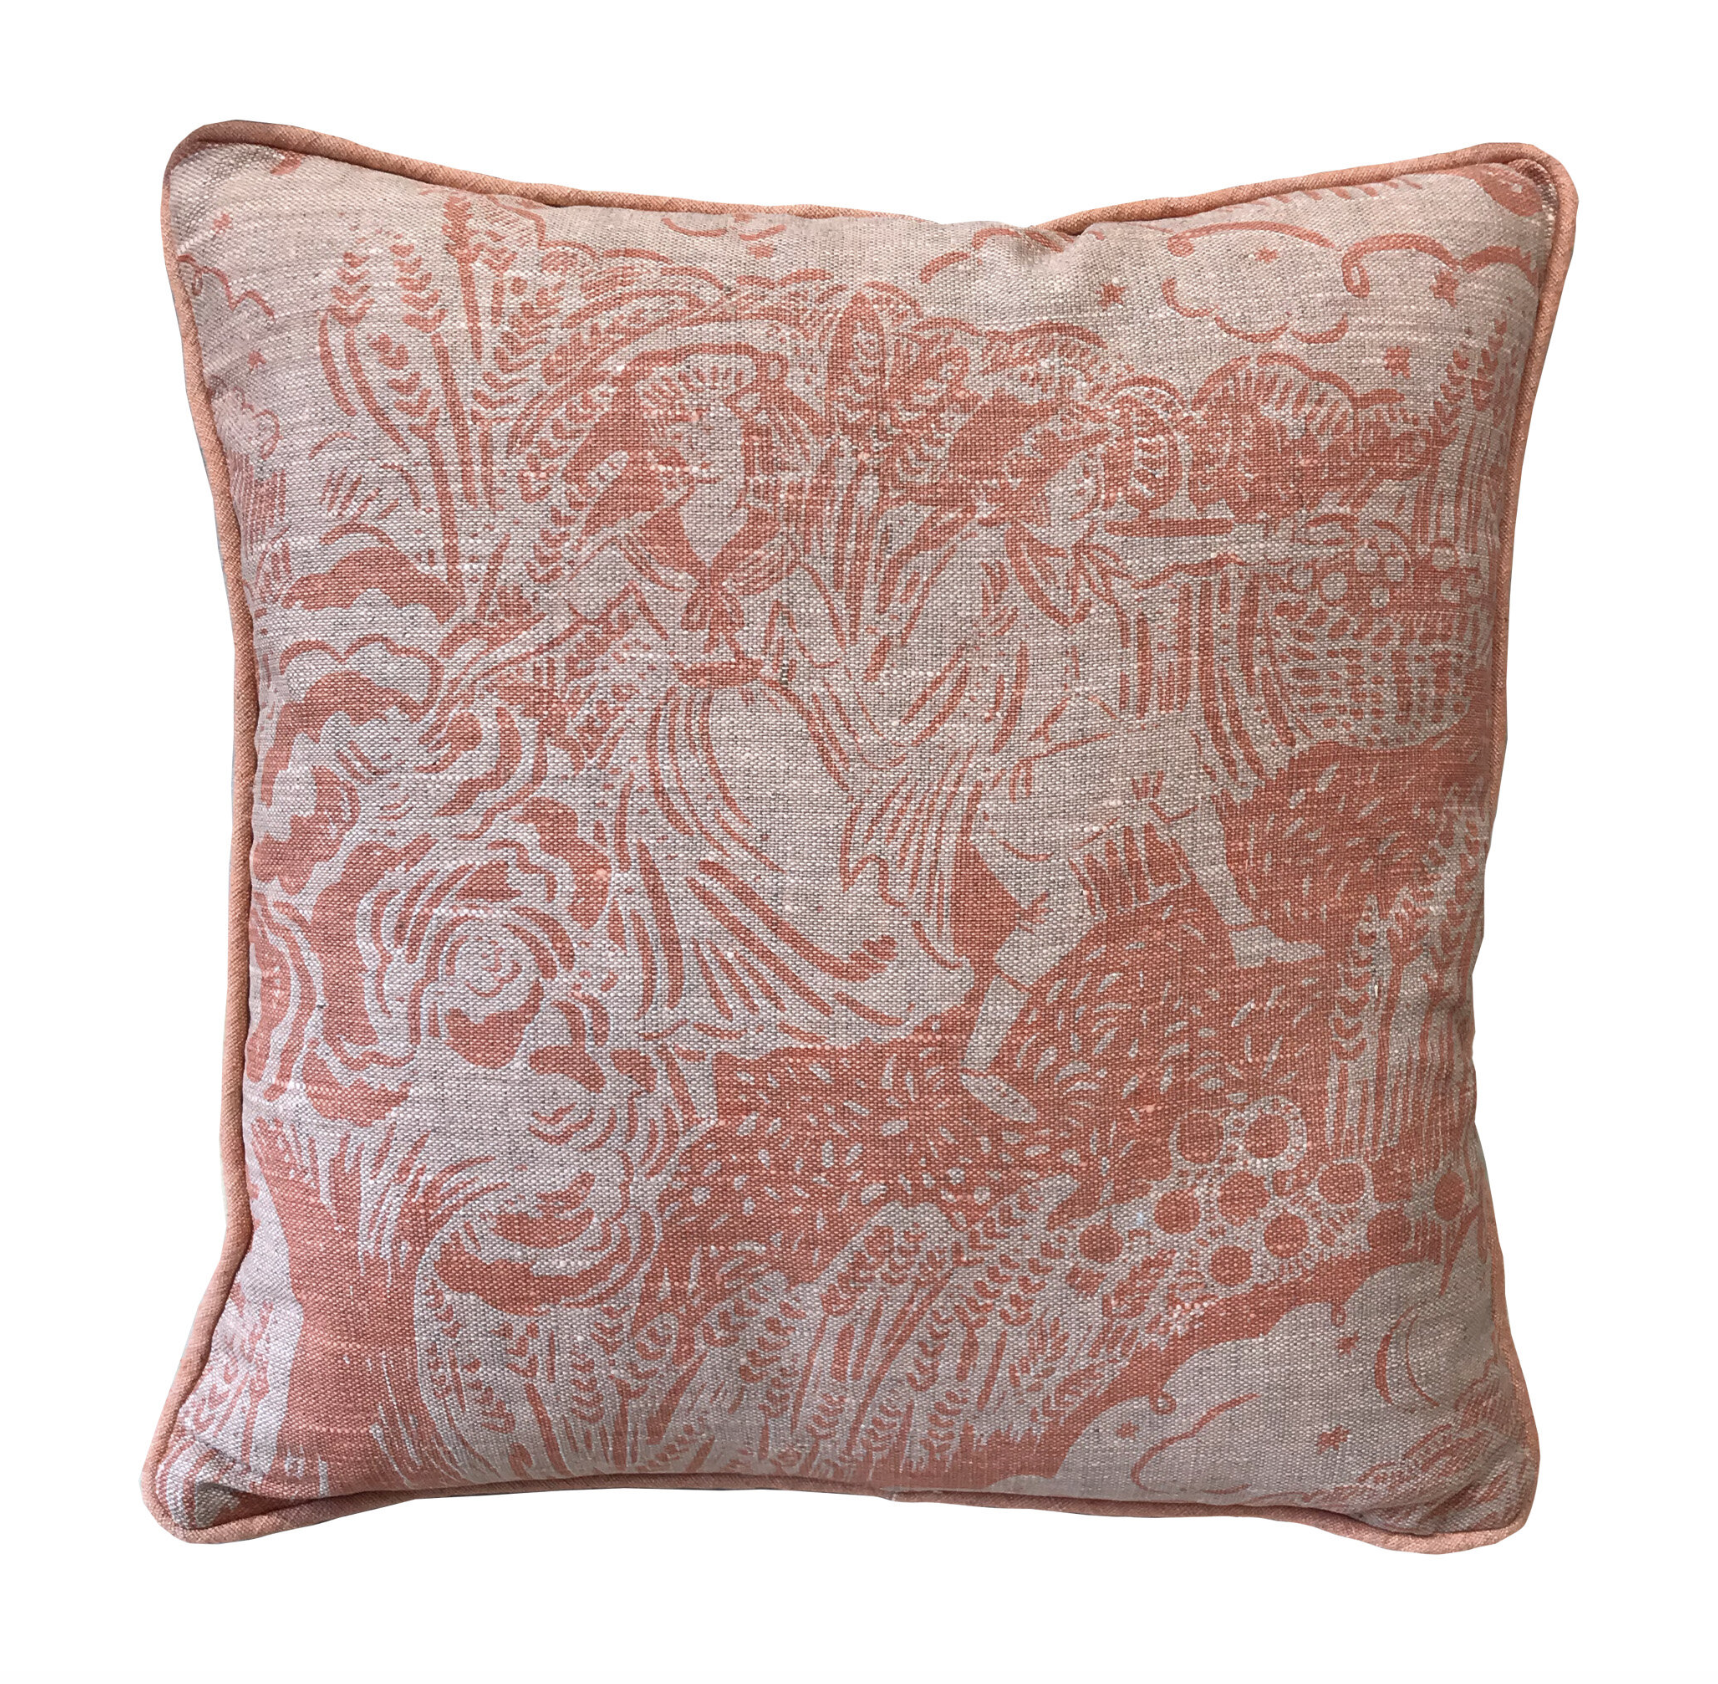 Small Apple Pickers Cushion - Coral